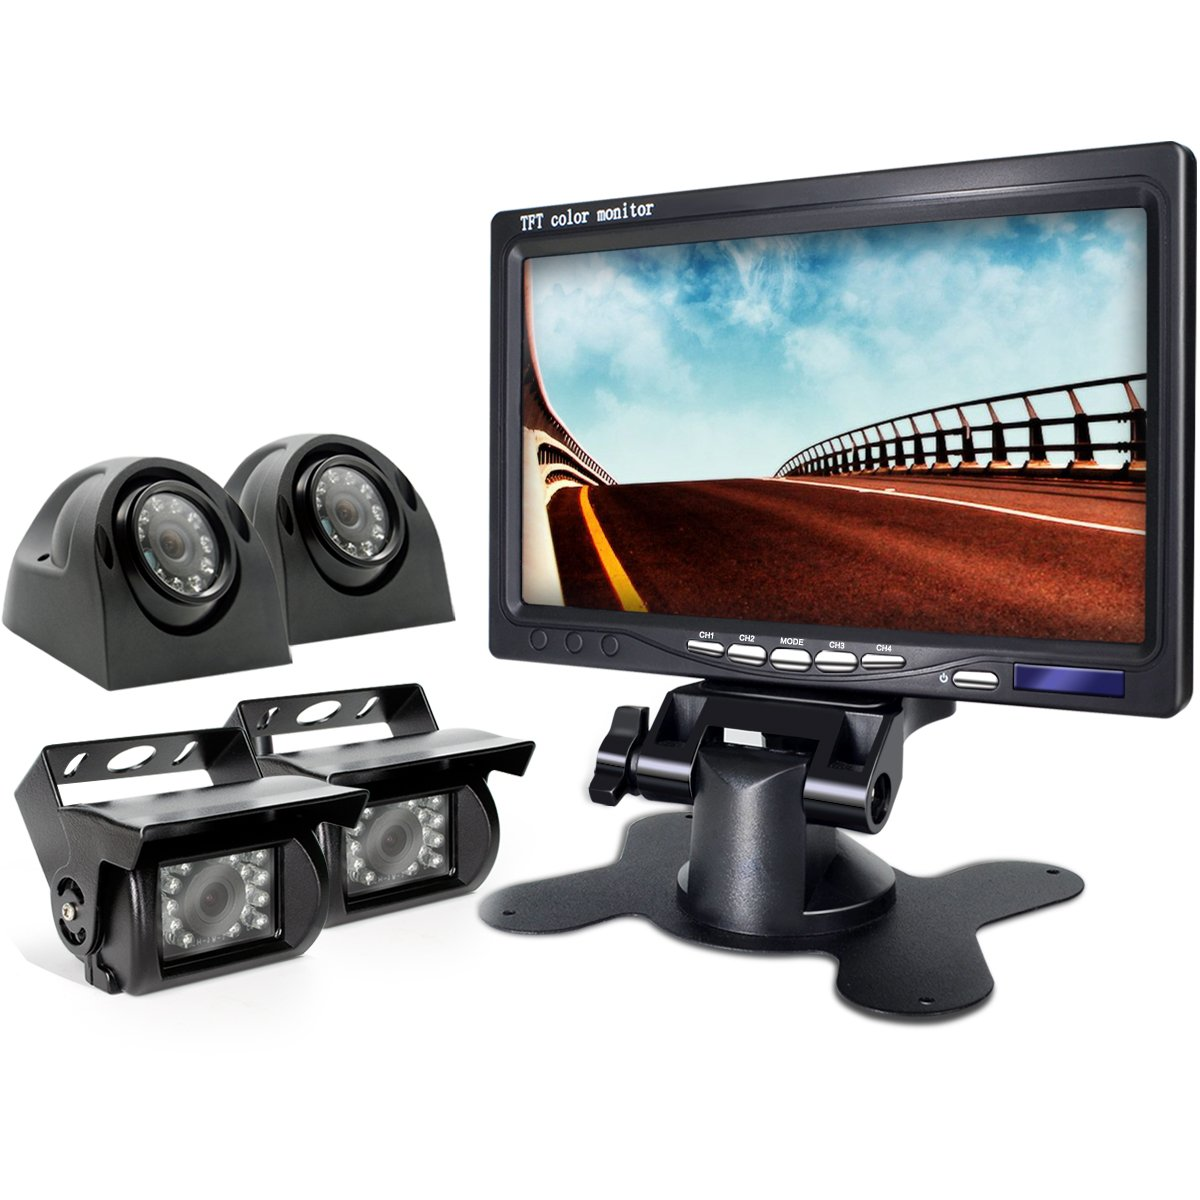 eRapta Reverse Camera with Split Screen Monitor